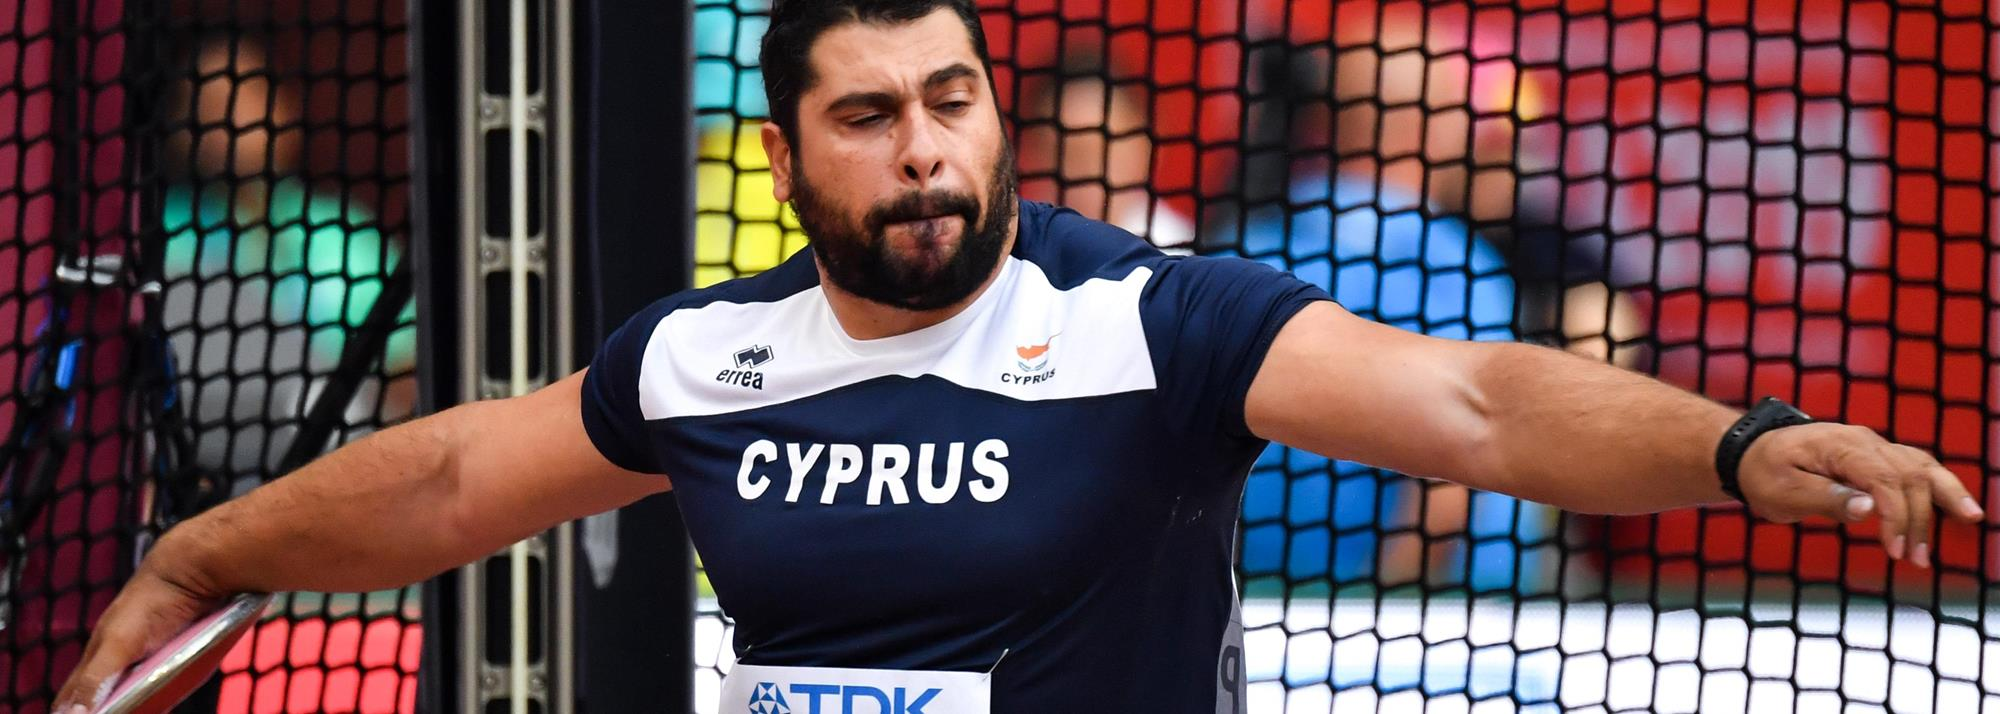 Parellis leading Cyprus's Olympic ambitions